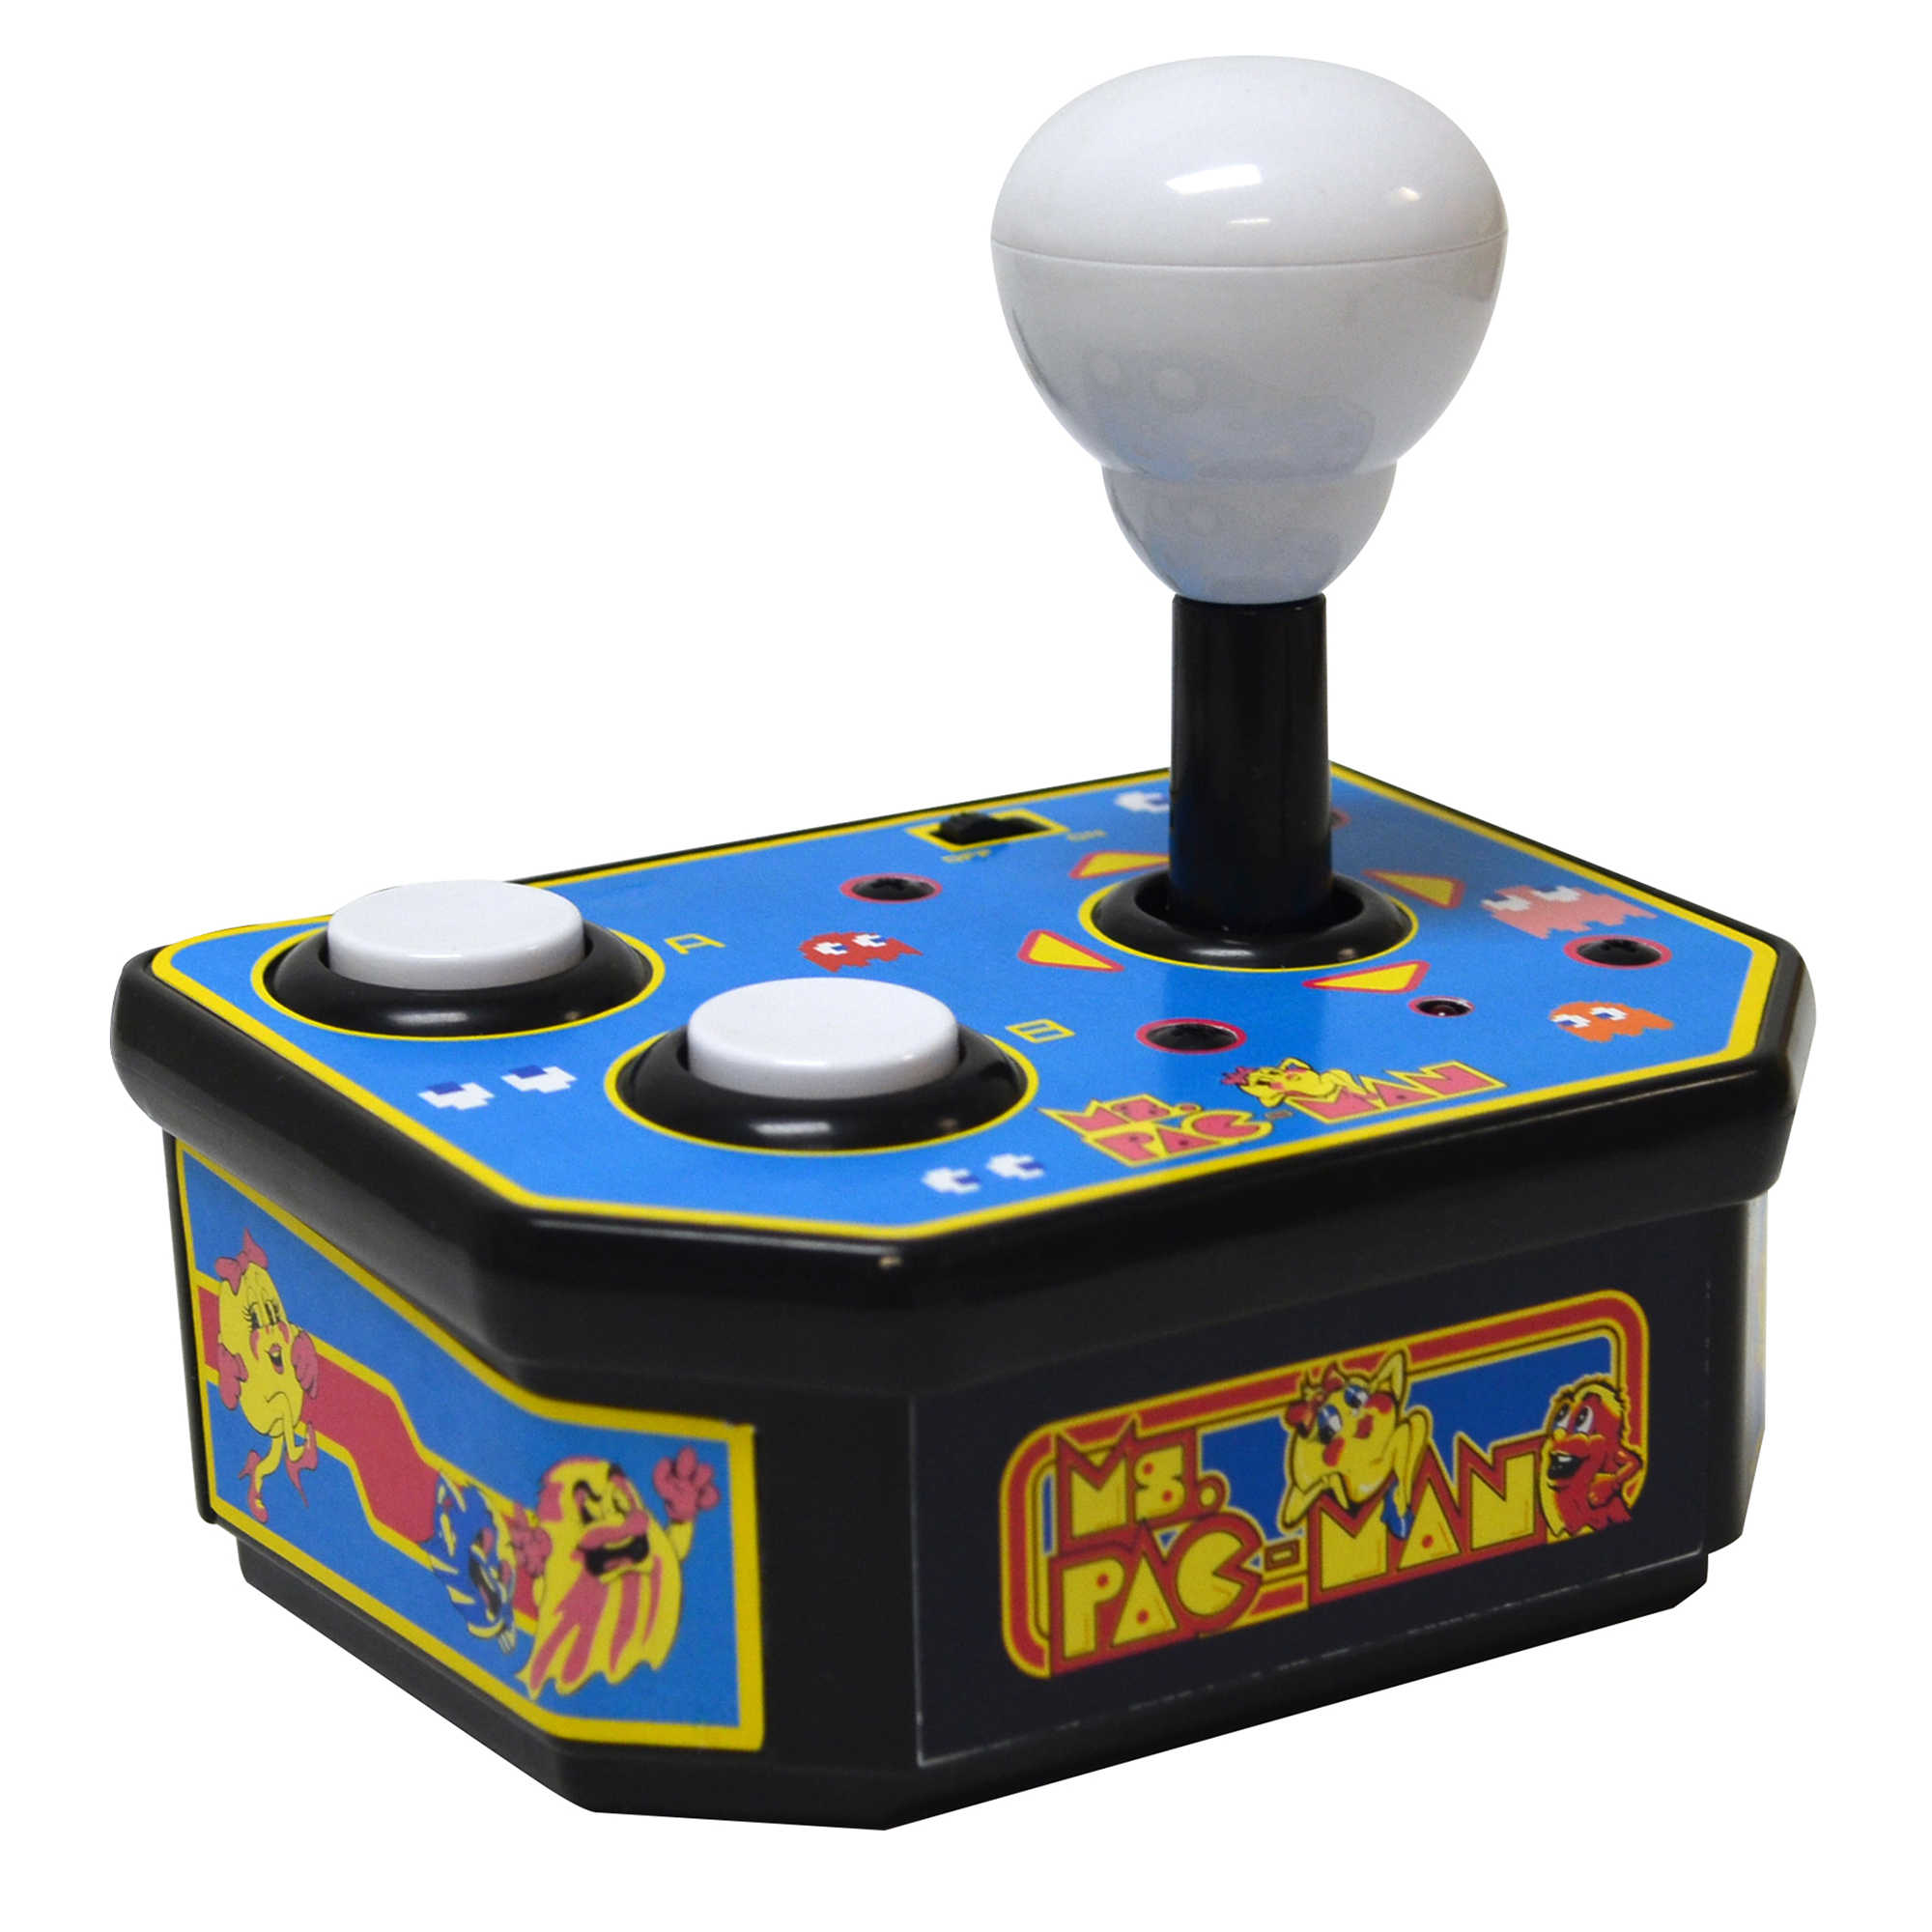 ms pac man plug and play classic arcade game. Black Bedroom Furniture Sets. Home Design Ideas